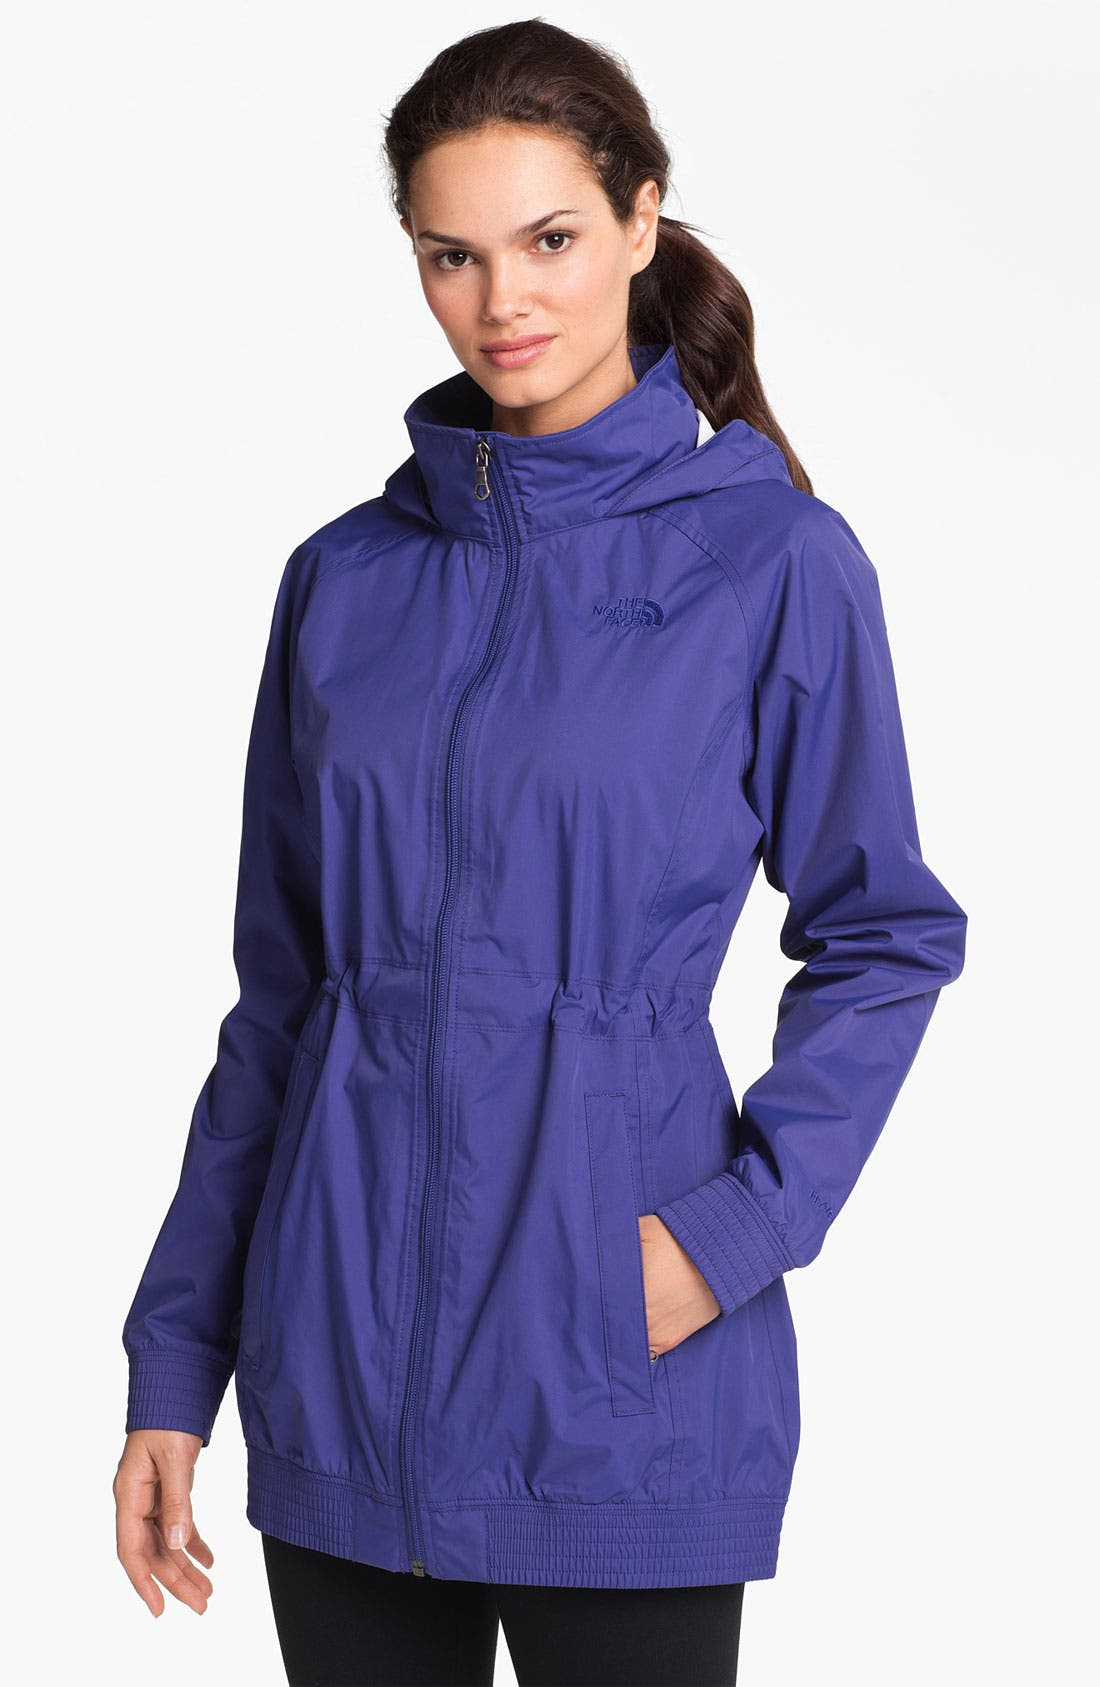 Alternate Image 1 Selected - The North Face 'Sereyna' Hooded Rain Jacket